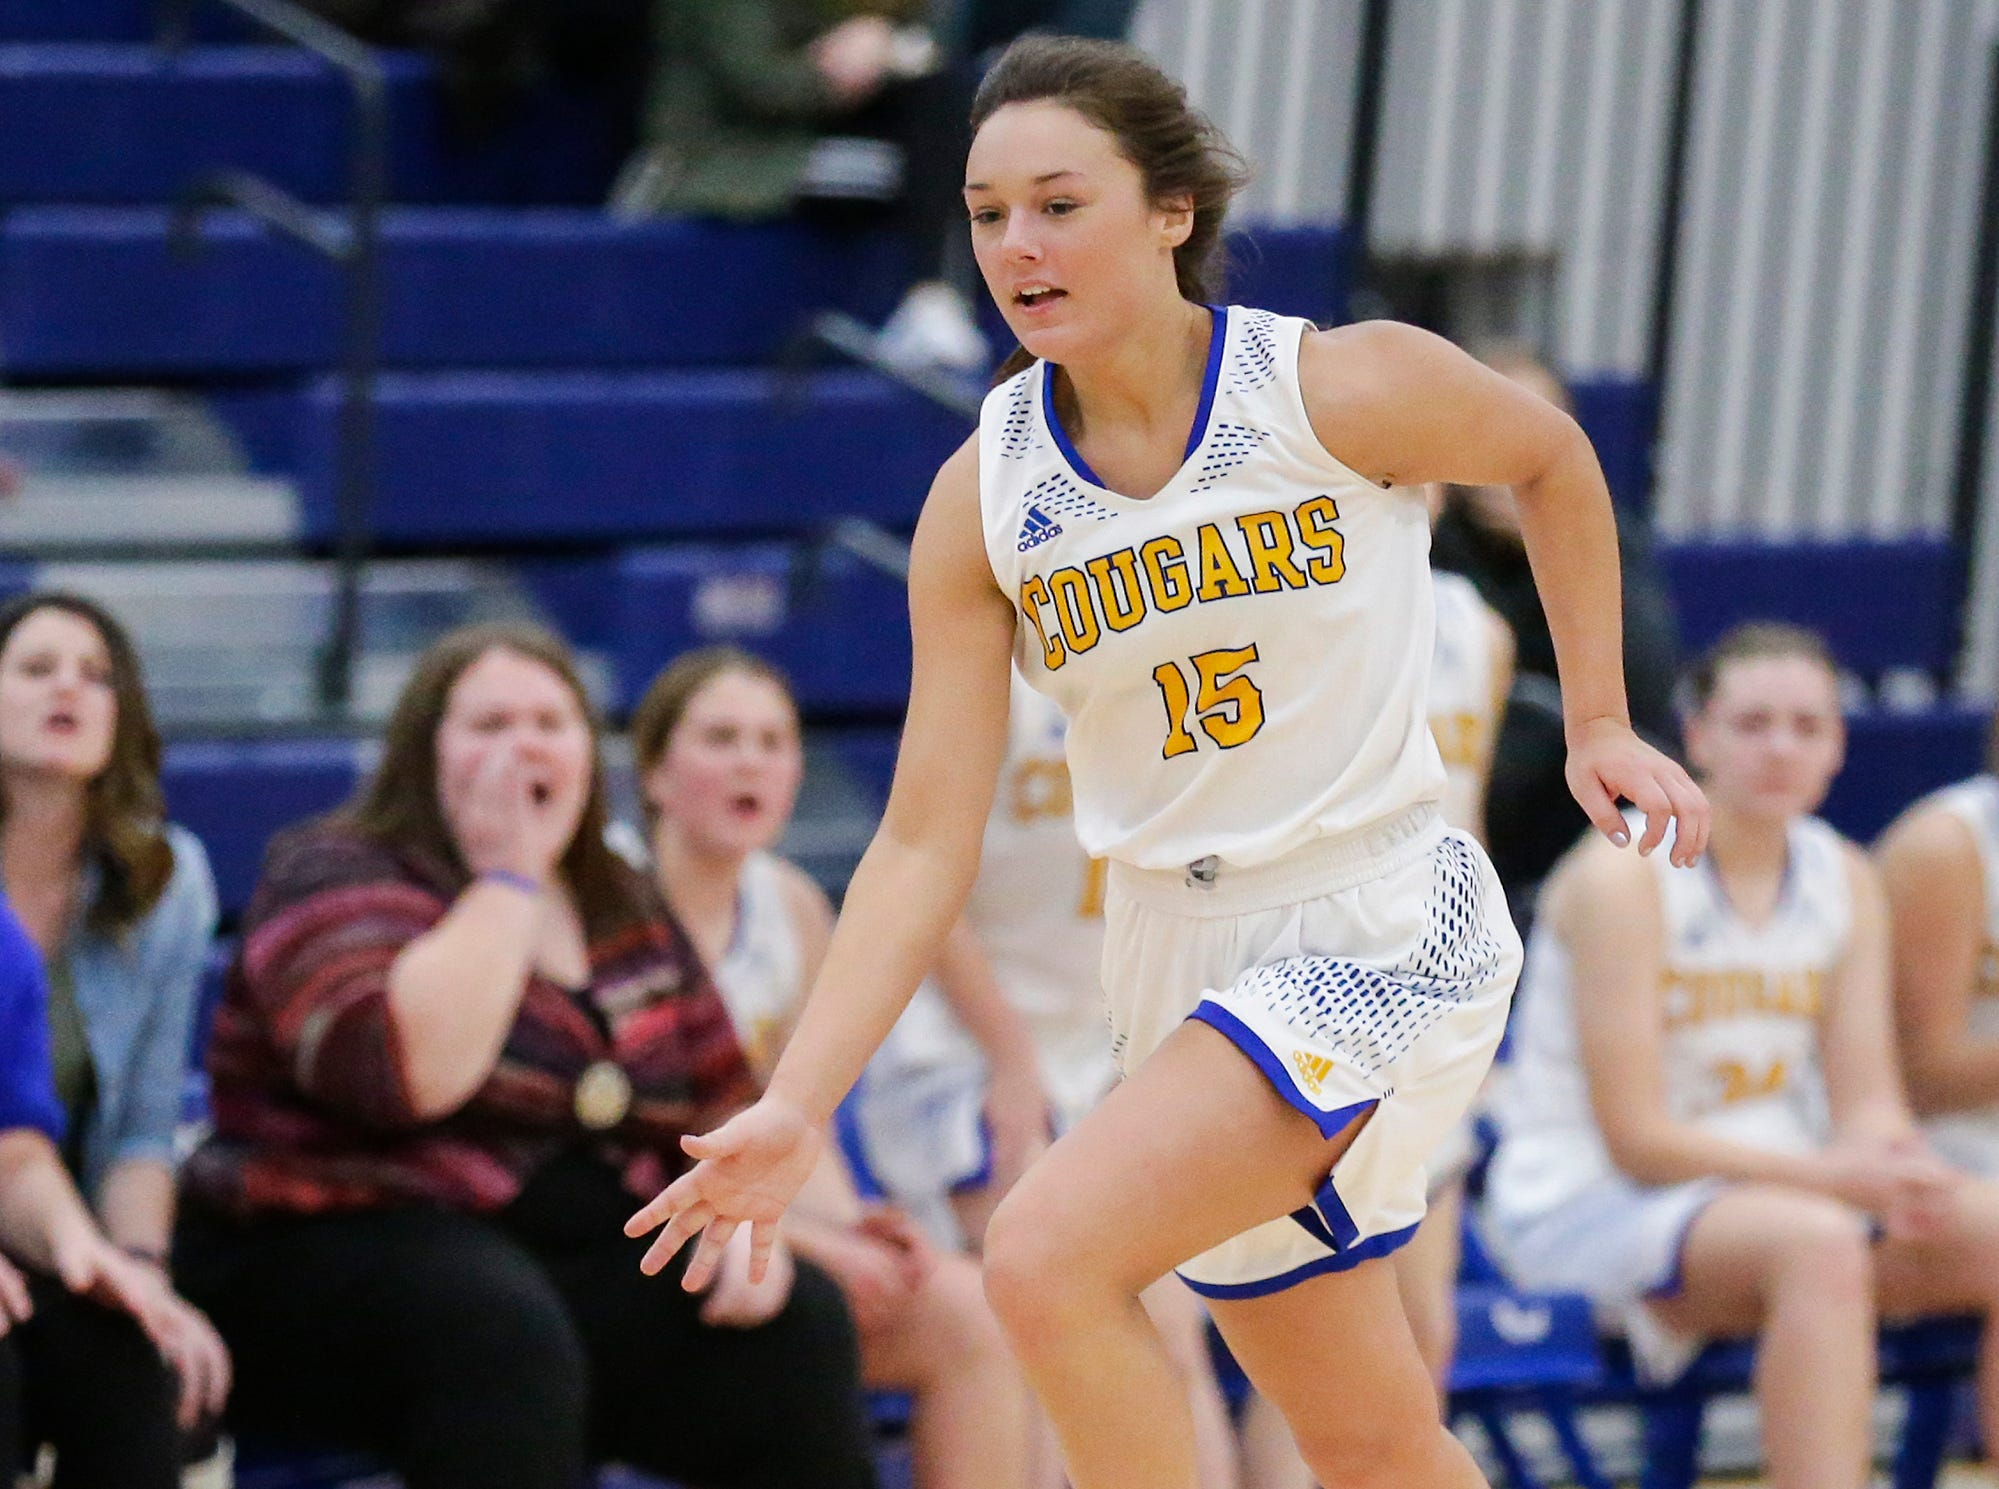 Campbellsport High School girls basketball's Grace Nerat works her way down the court against Lomira High School during their game Friday, December 28, 2018 in Campbellsport.